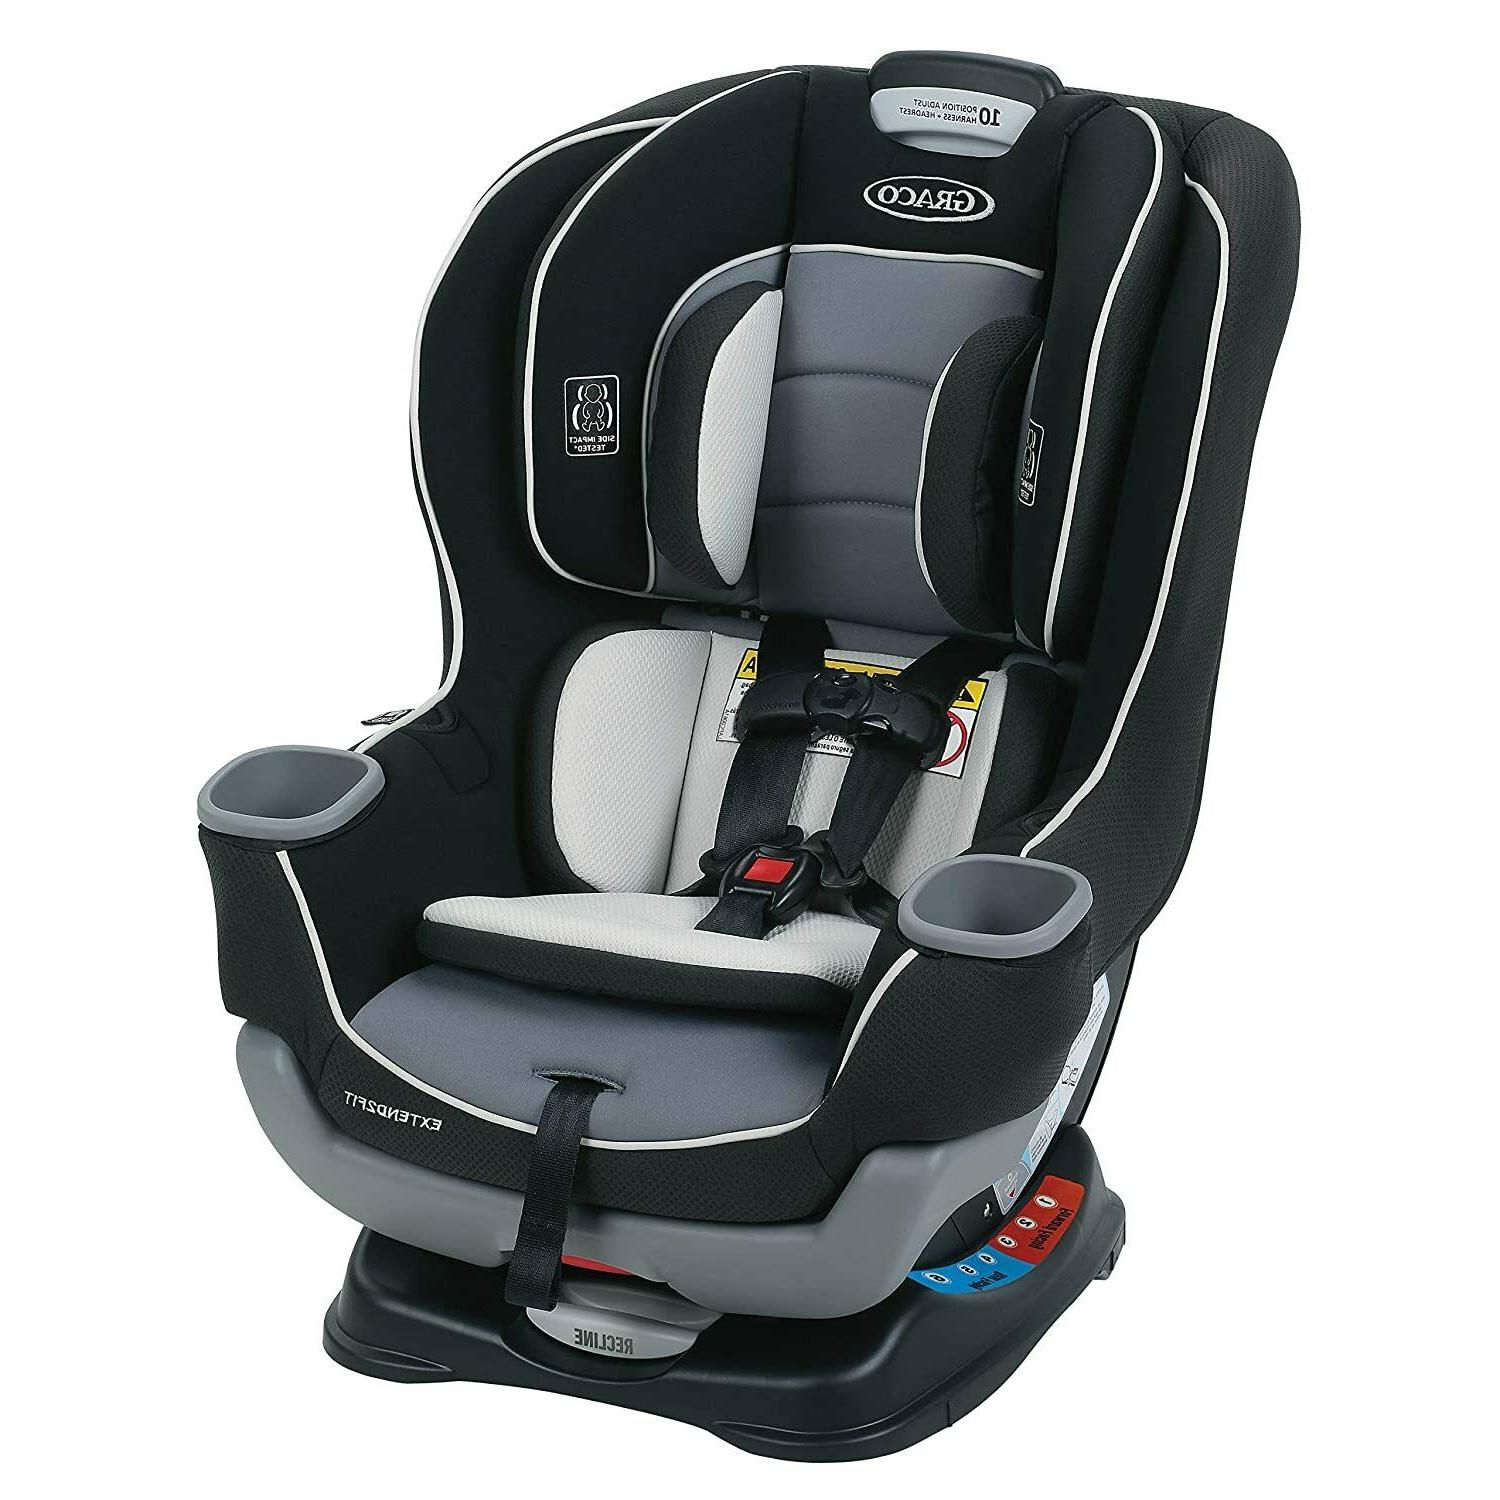 Graco Seat Facing Longer Extend2Fit